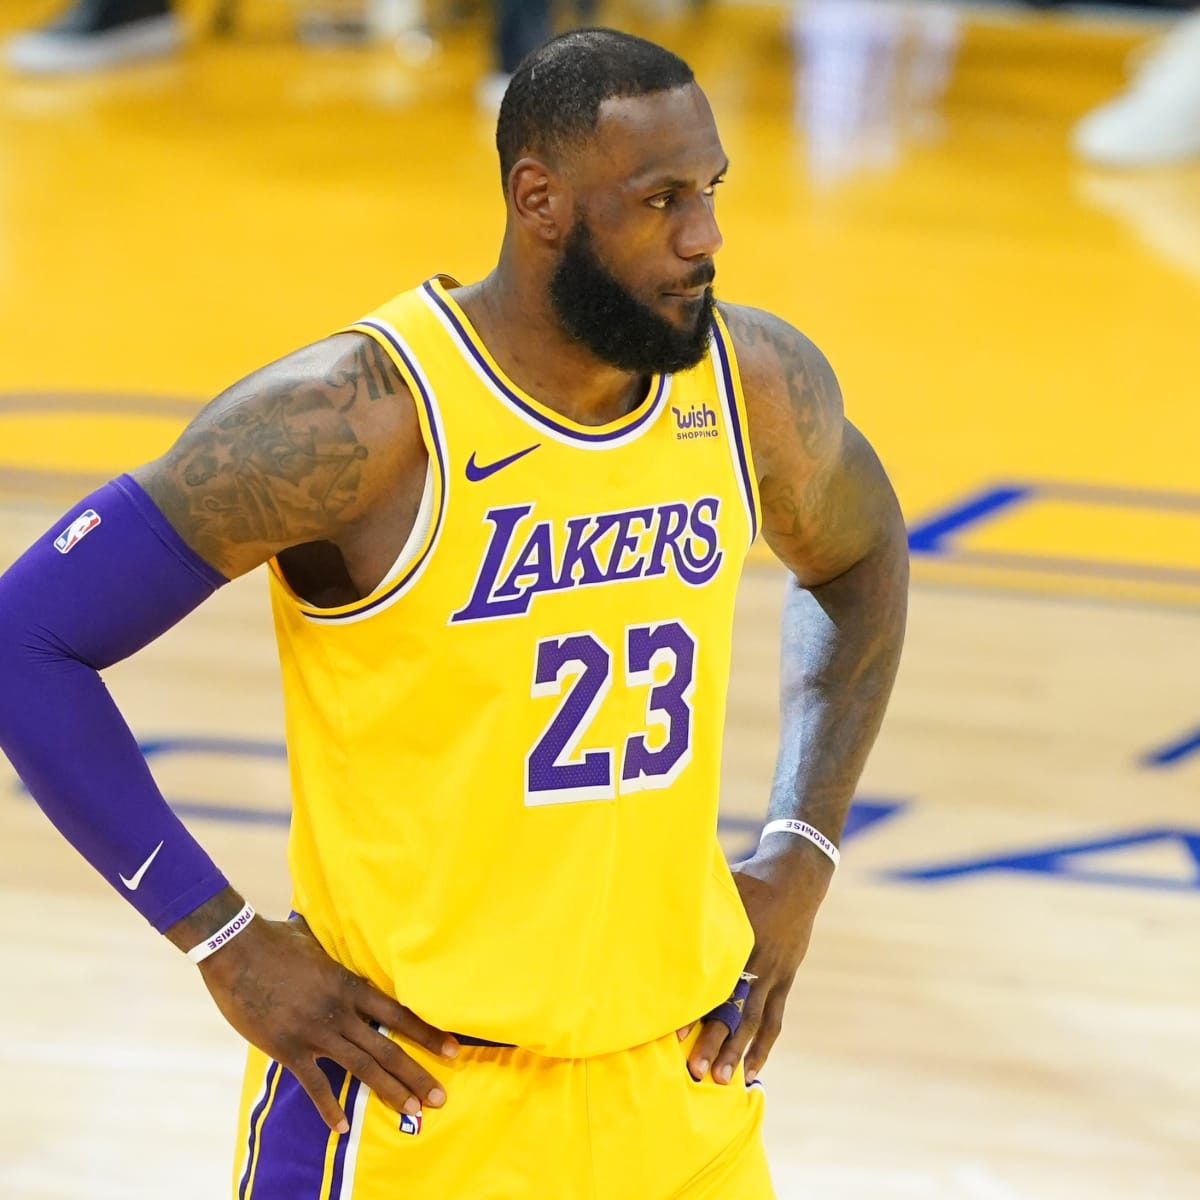 LeBron James: Lakers star back in lineup vs Kings after ankle injury -  Sports Illustrated